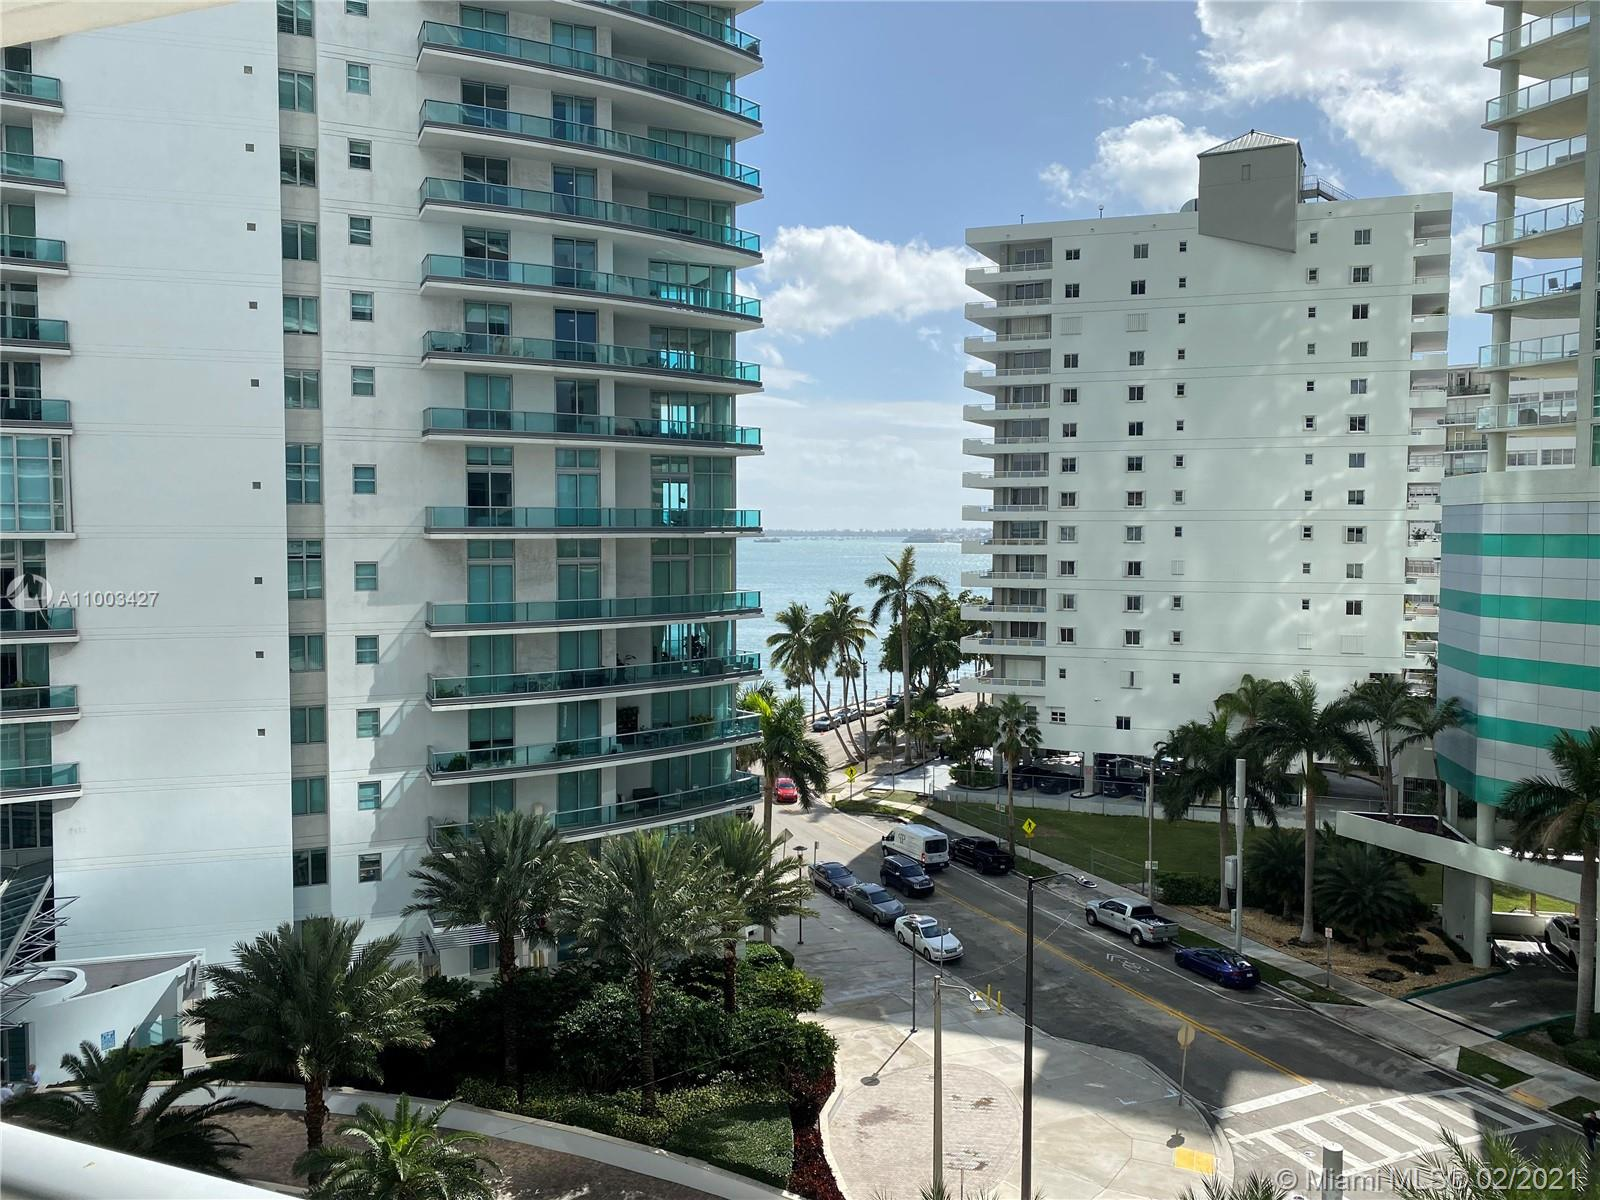 Brickell House #707 - 1300 Brickell Bay Dr #707, Miami, FL 33131